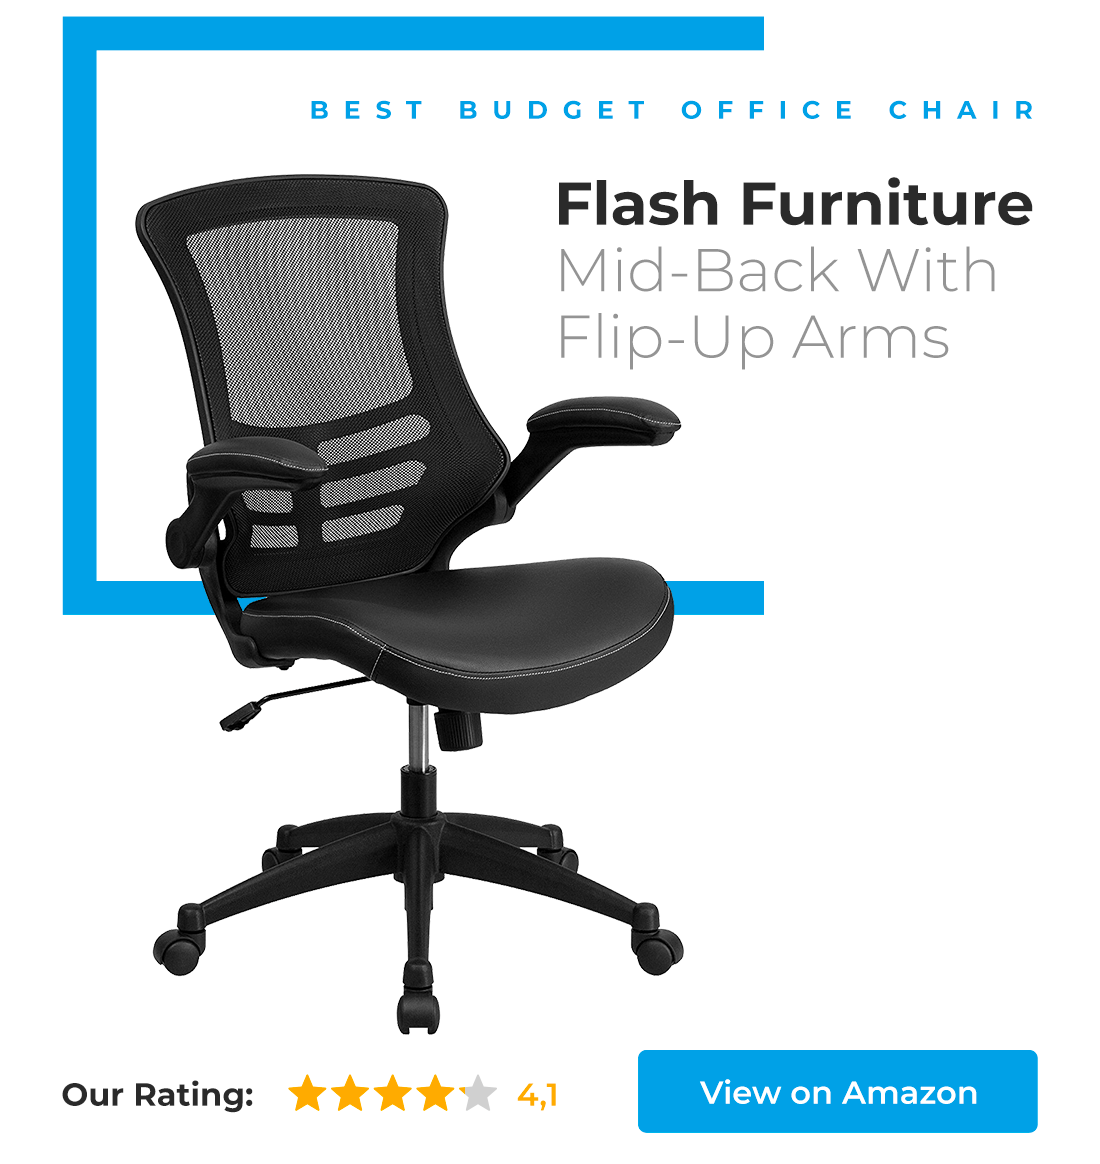 Flash Furniture Mid-Back with Flip-Up Arms